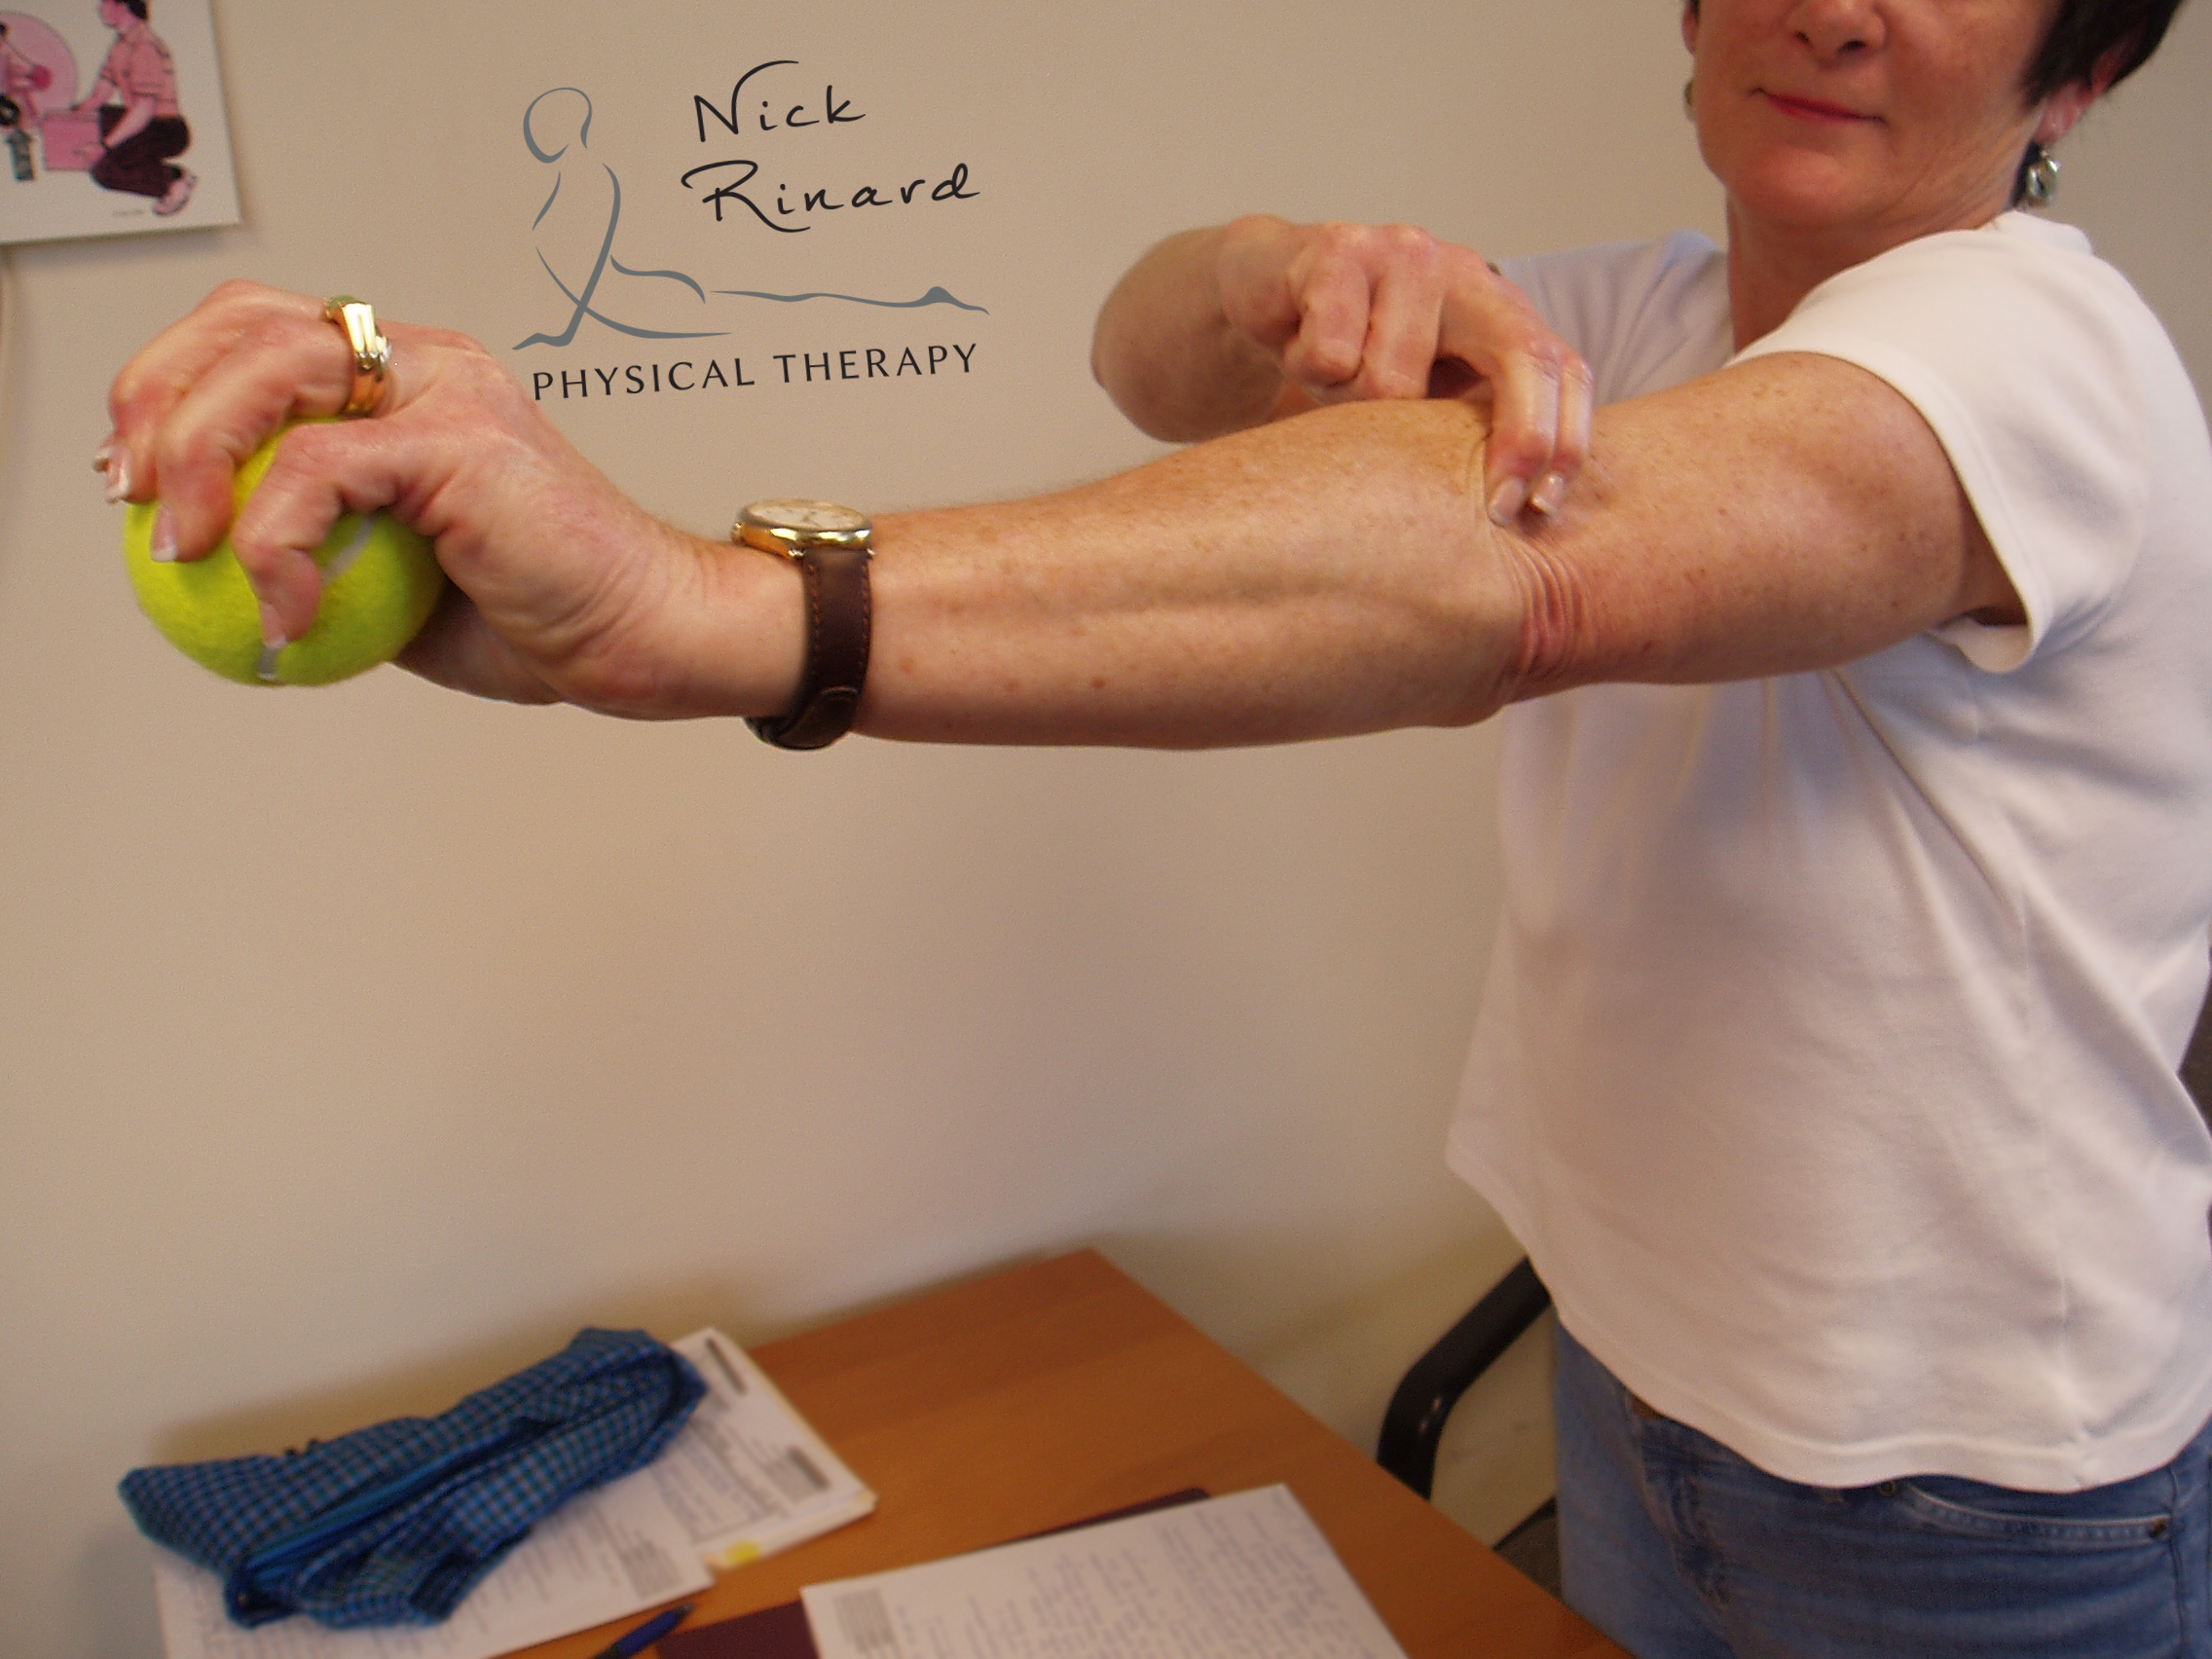 Mobilization with Movement with Grip